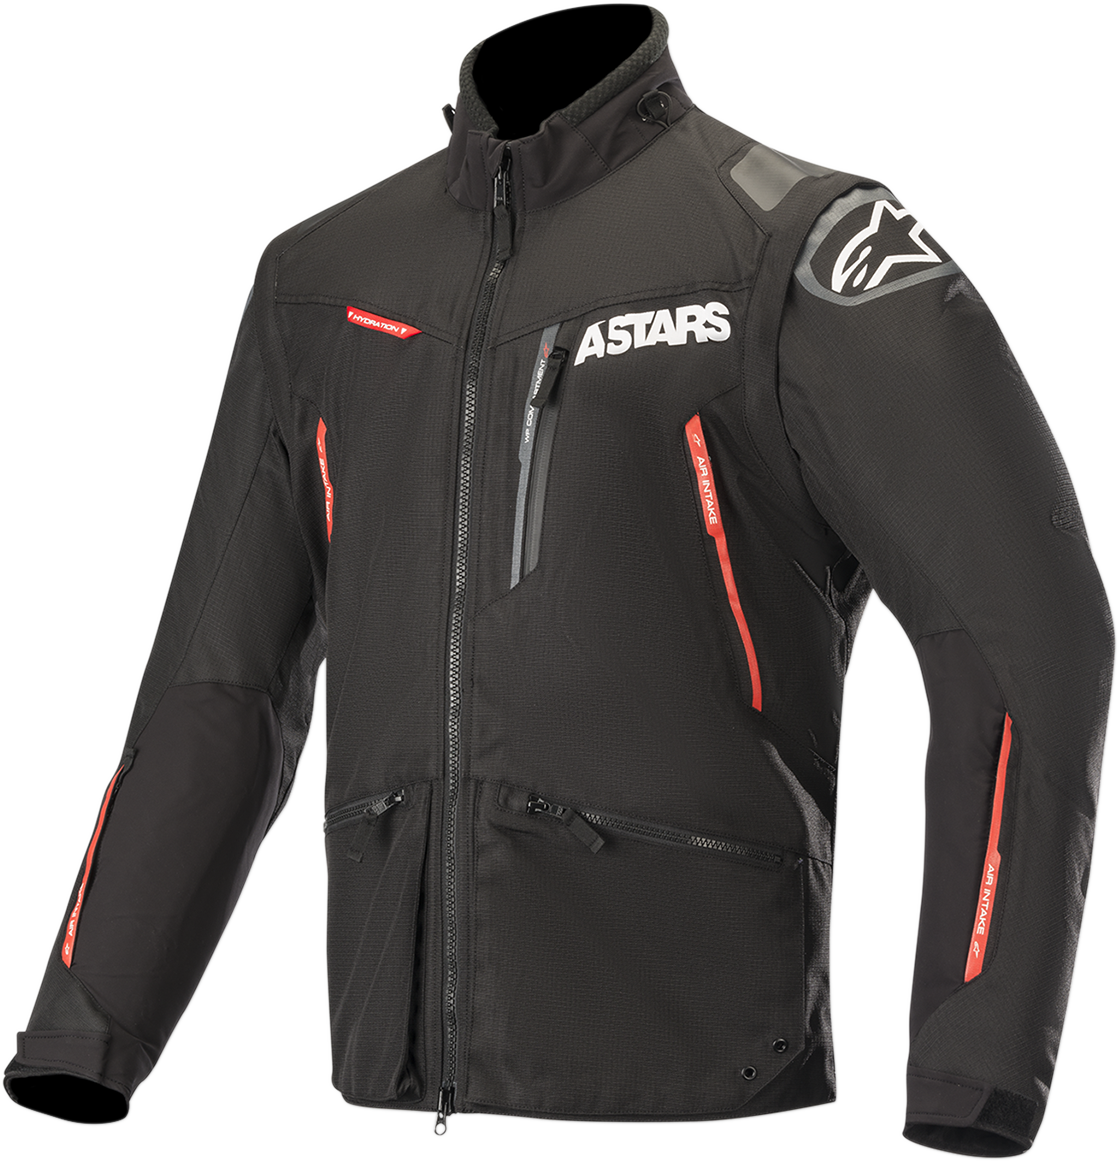 Alpinestars Mens Venture MX Offroad Dual Sport ATV Riding Street Racing Jacket